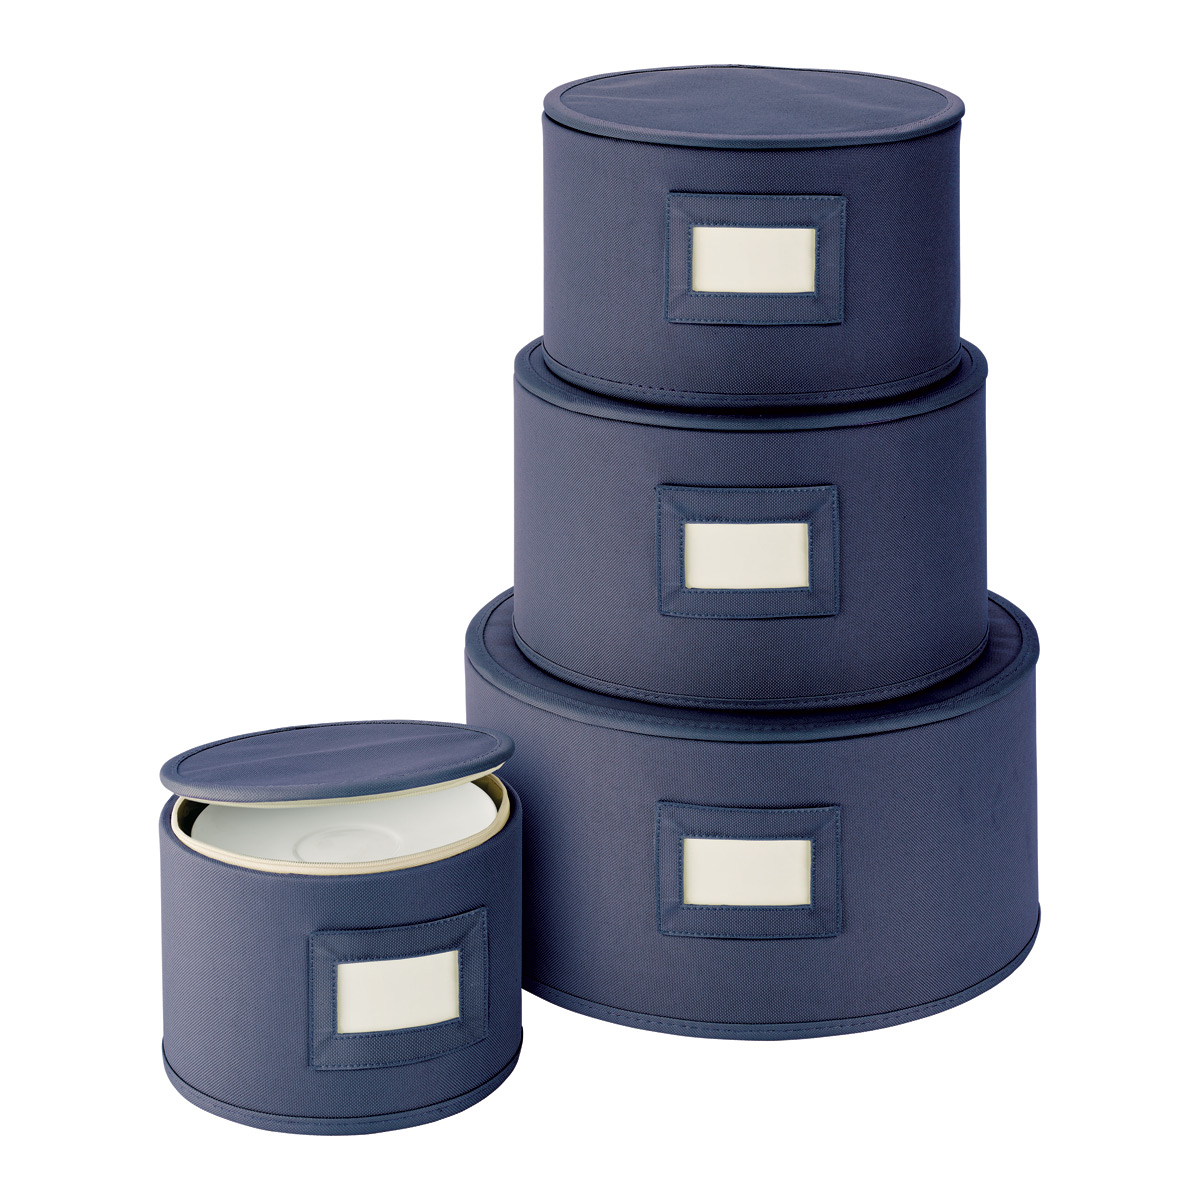 Blue Round Plate Storage Cases  sc 1 st  The Container Store & Blue Round Plate Storage Cases | The Container Store